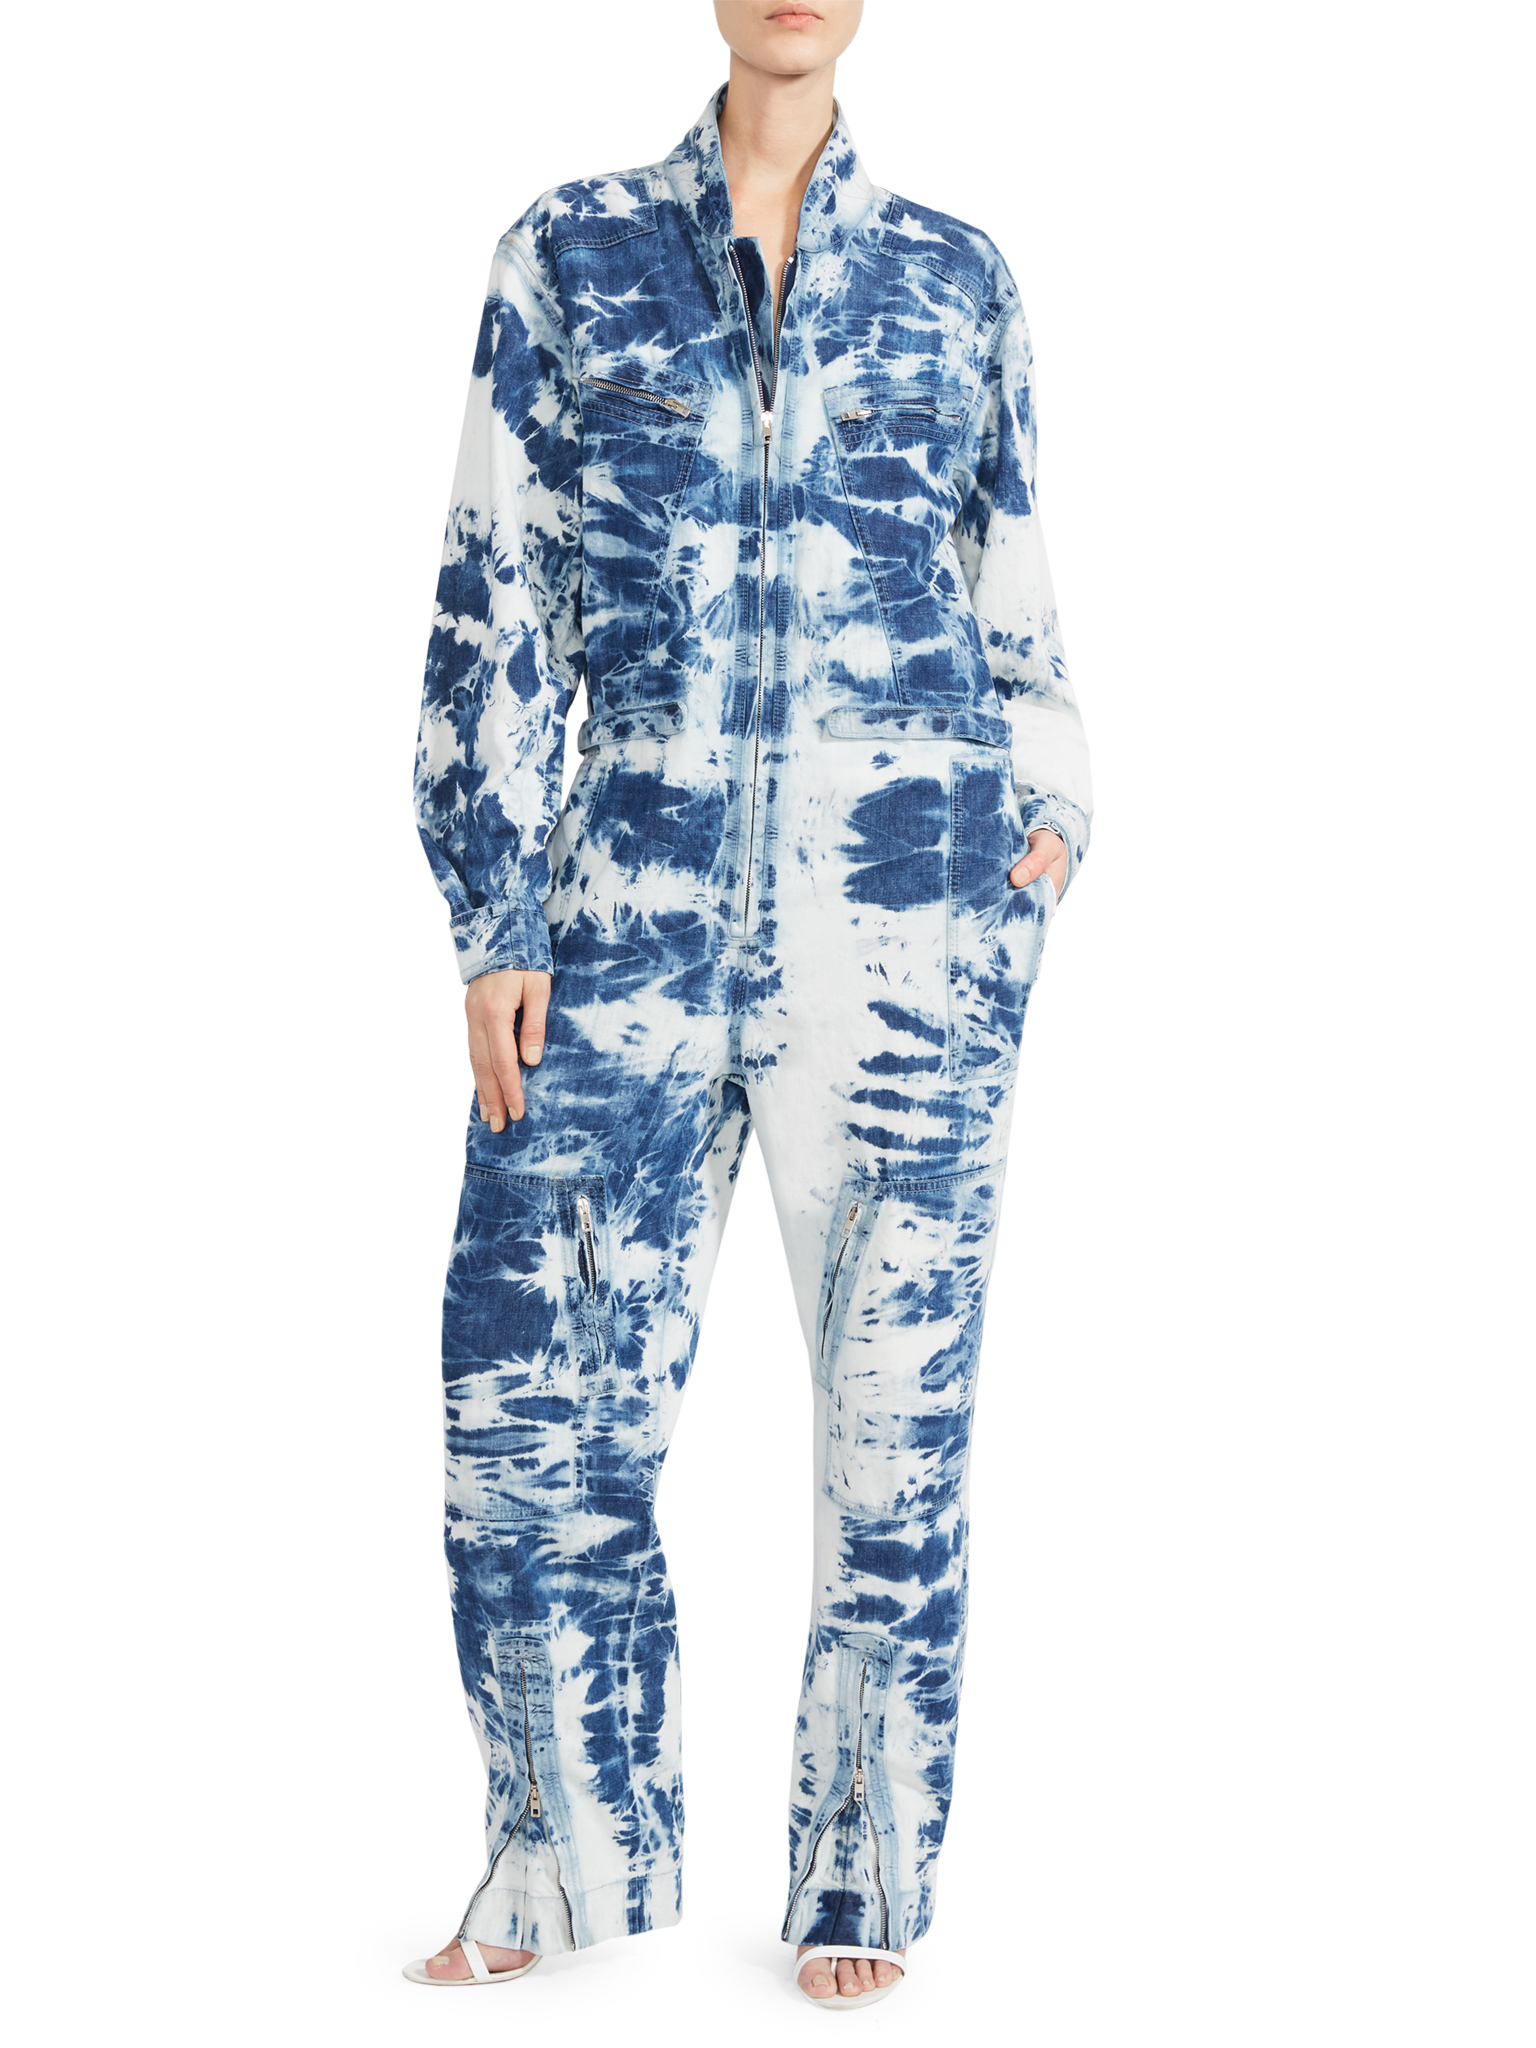 A tie-dye denim jumpsuit by Stella McCartney, expected to be a strong seller at Saks Fifth Avenue.